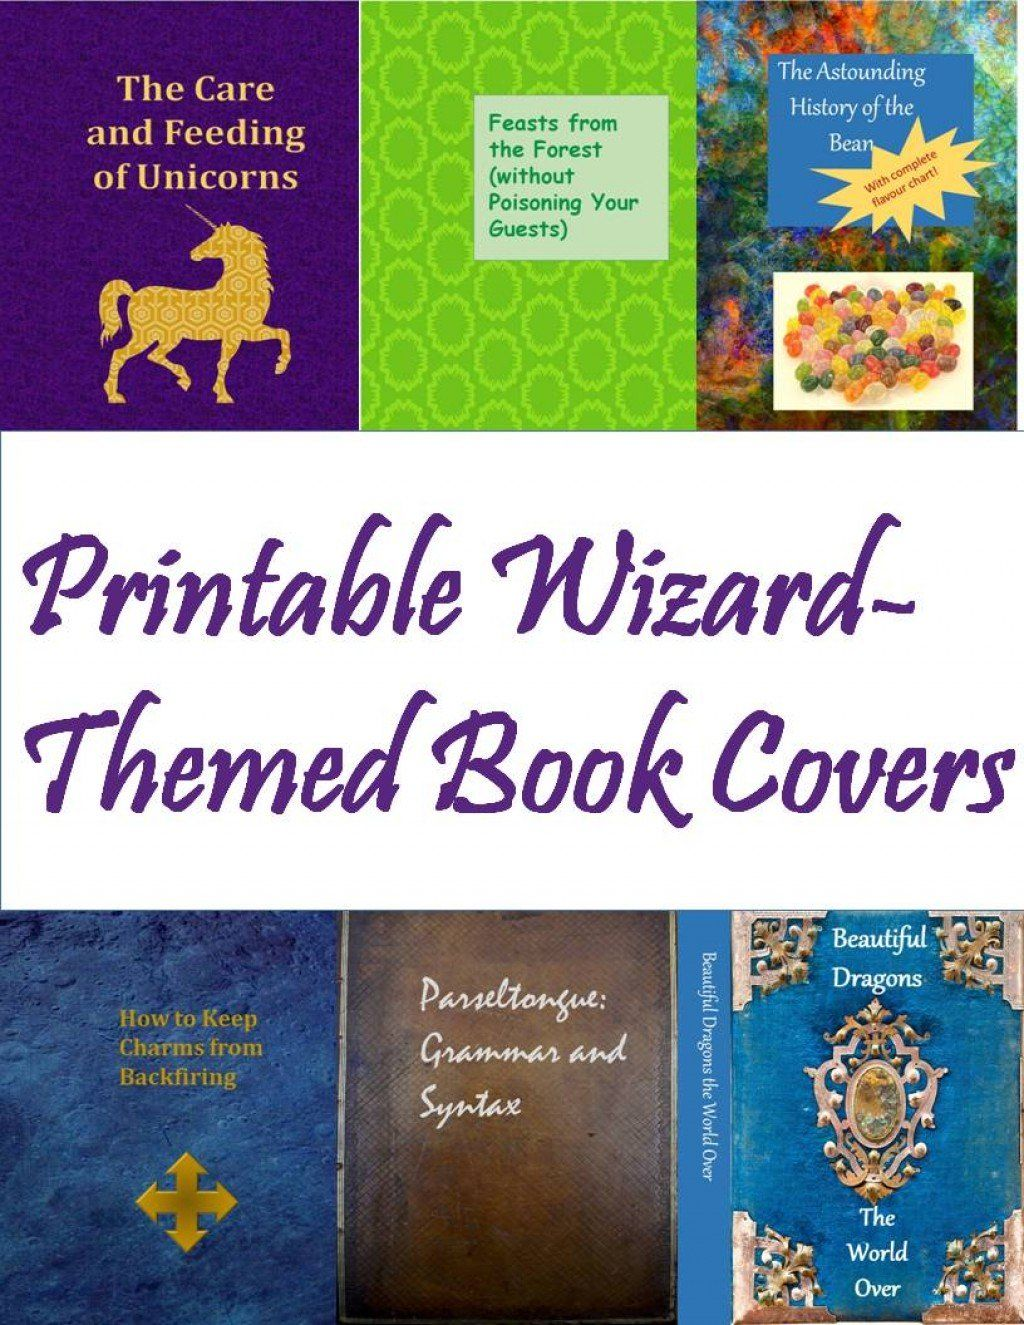 How to Make a Harry Potter Library Printable Wizard